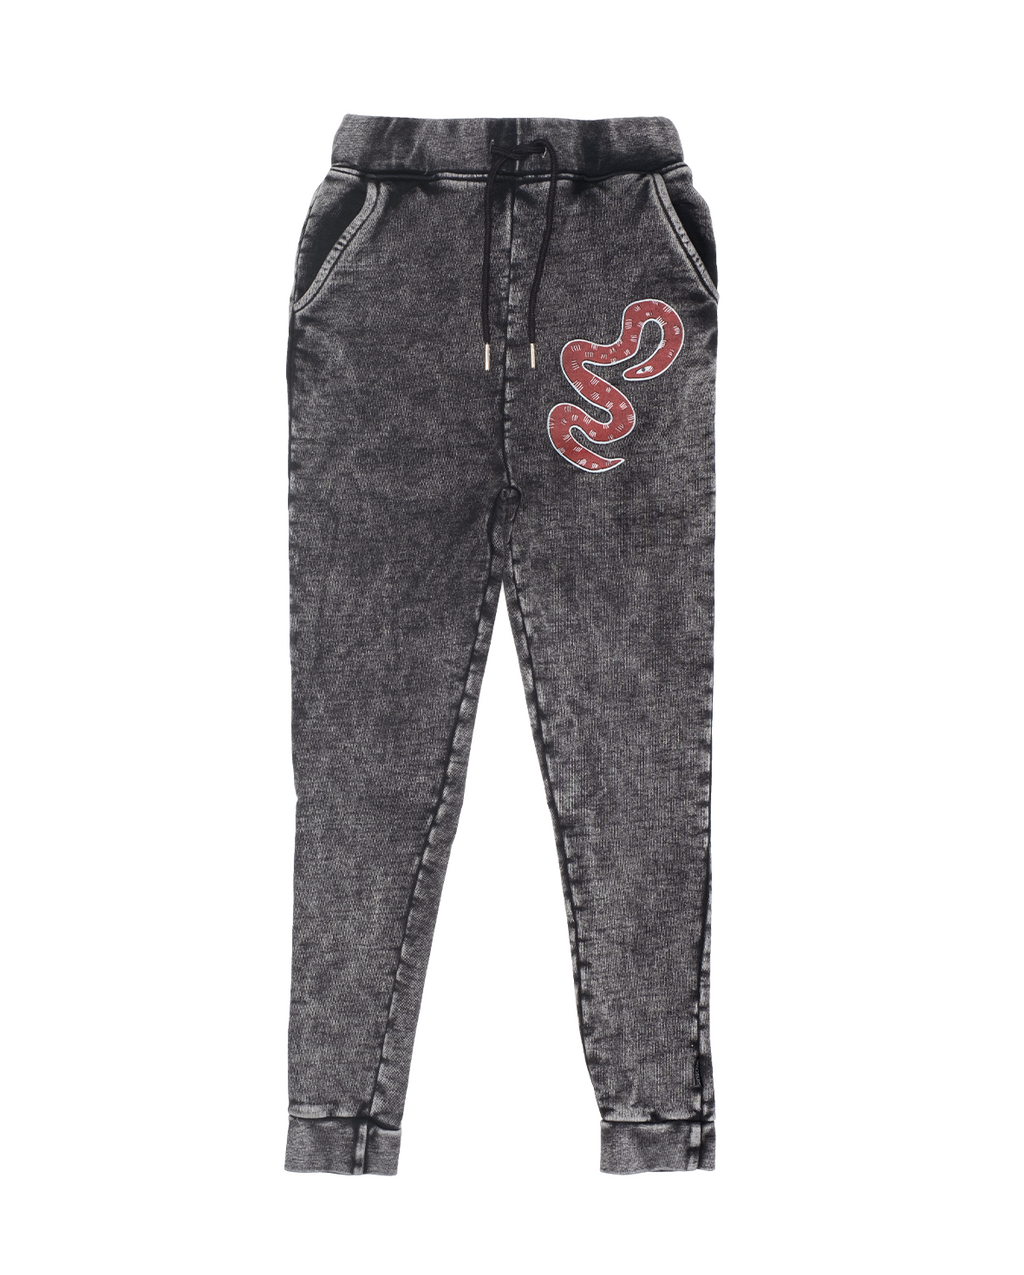 Band of Boys - Bandits - Red Snake Skinny Trackie - Vintage Black